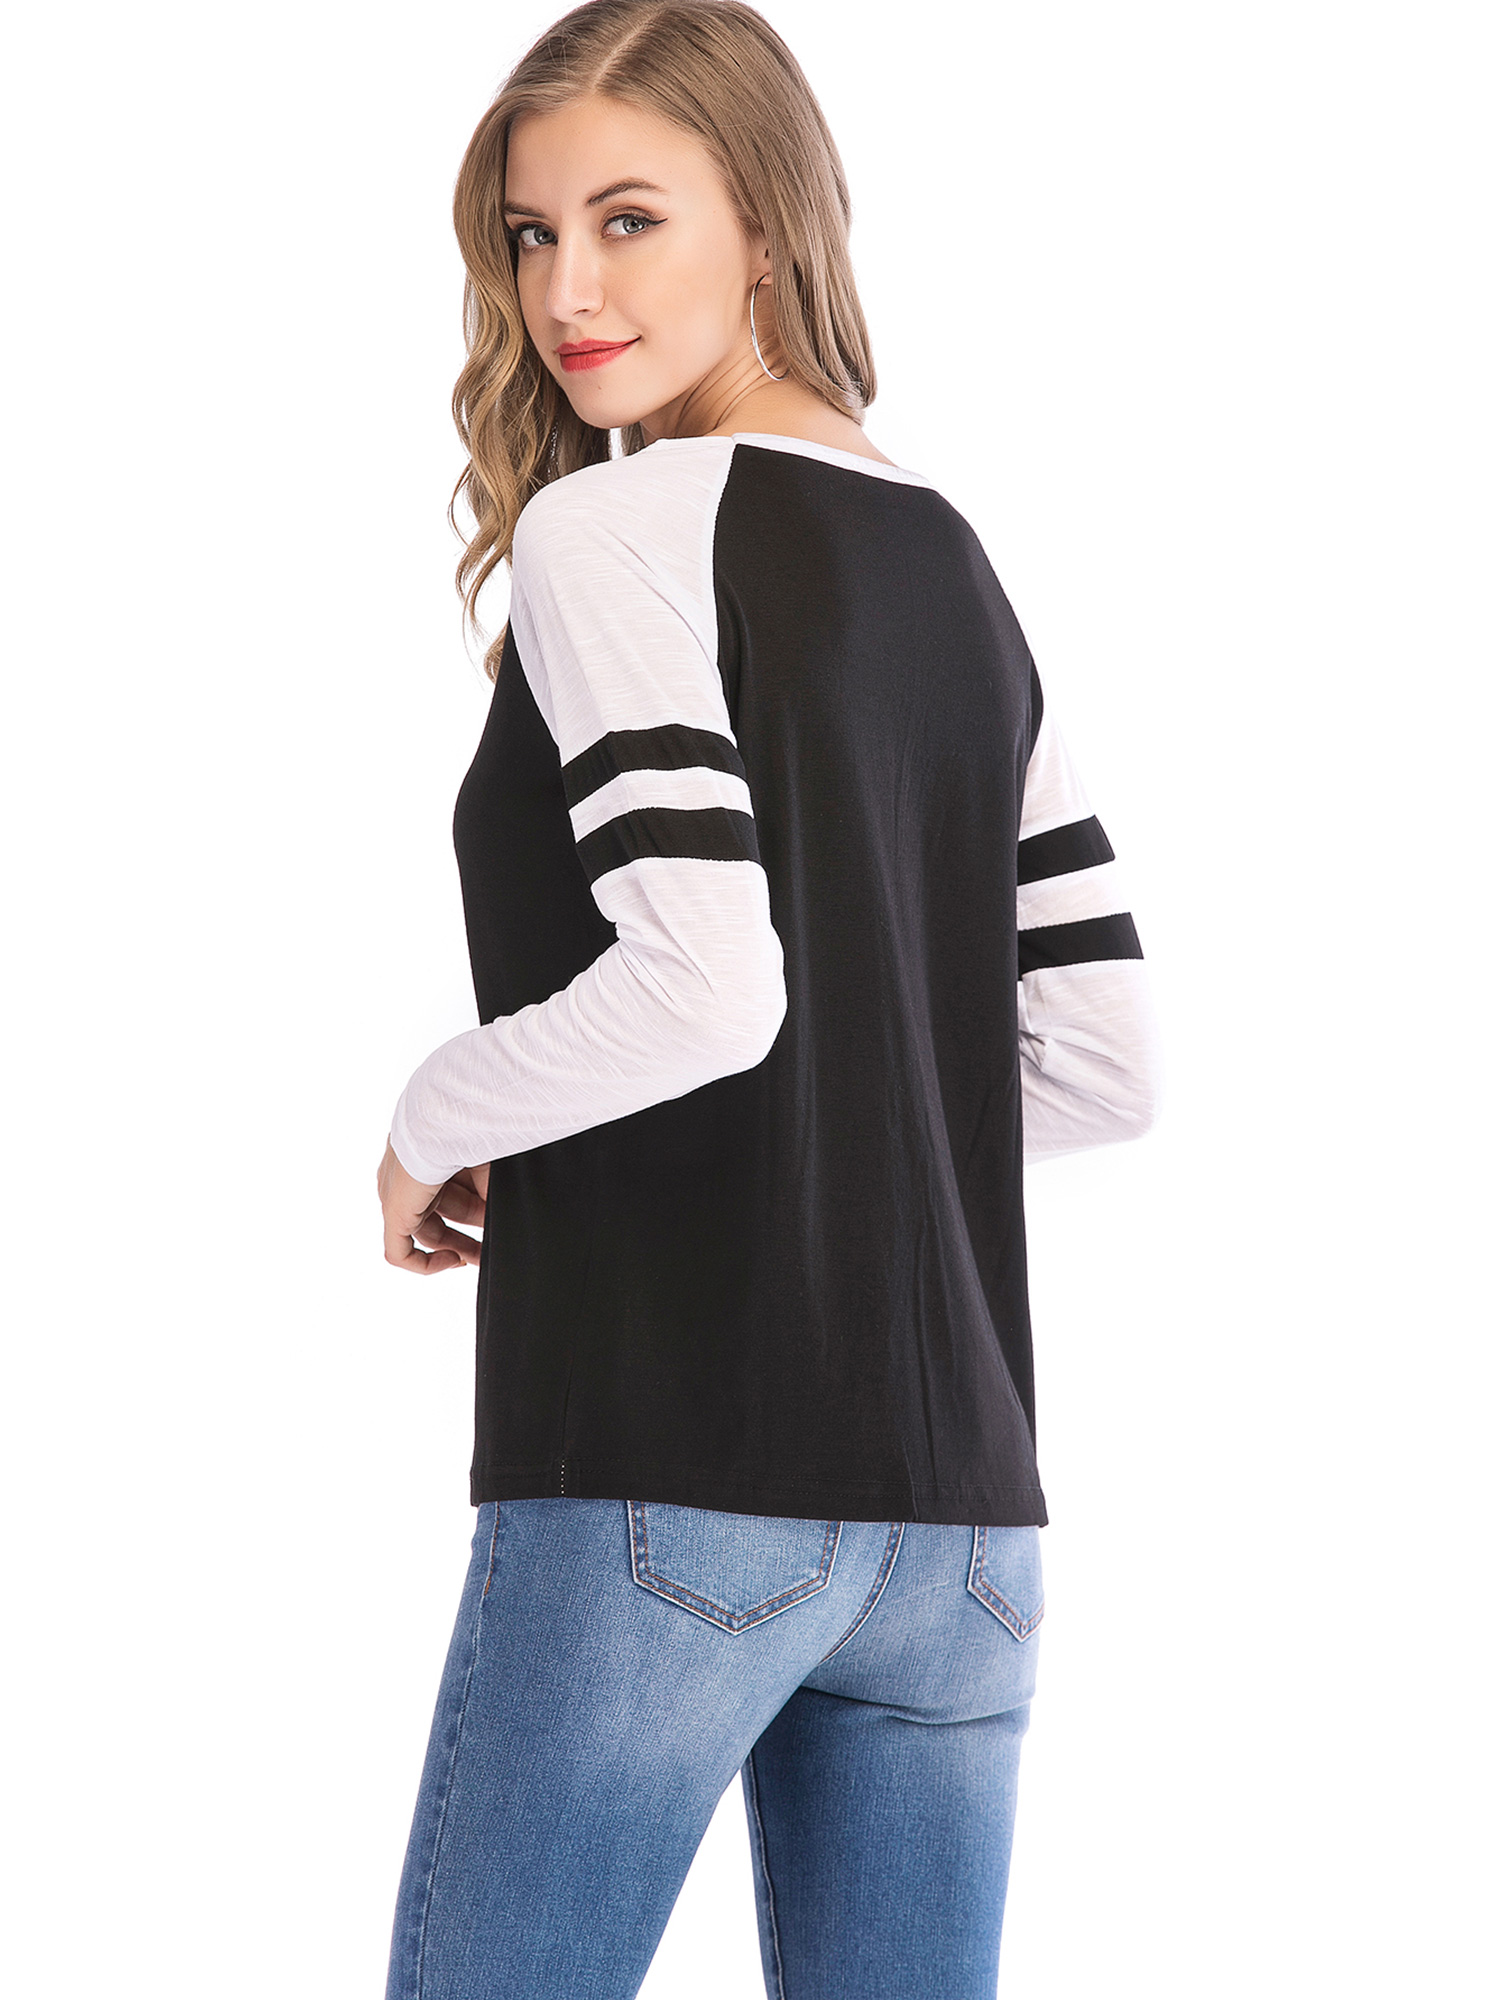 4b0f9970 SAYFUT - SAYFUT Round Neck Blouses T-Shirts for Women Long Sleeve Pullover Tops  Casual Shirts Black/Blue/Pueplr Size S-5XL - Walmart.com